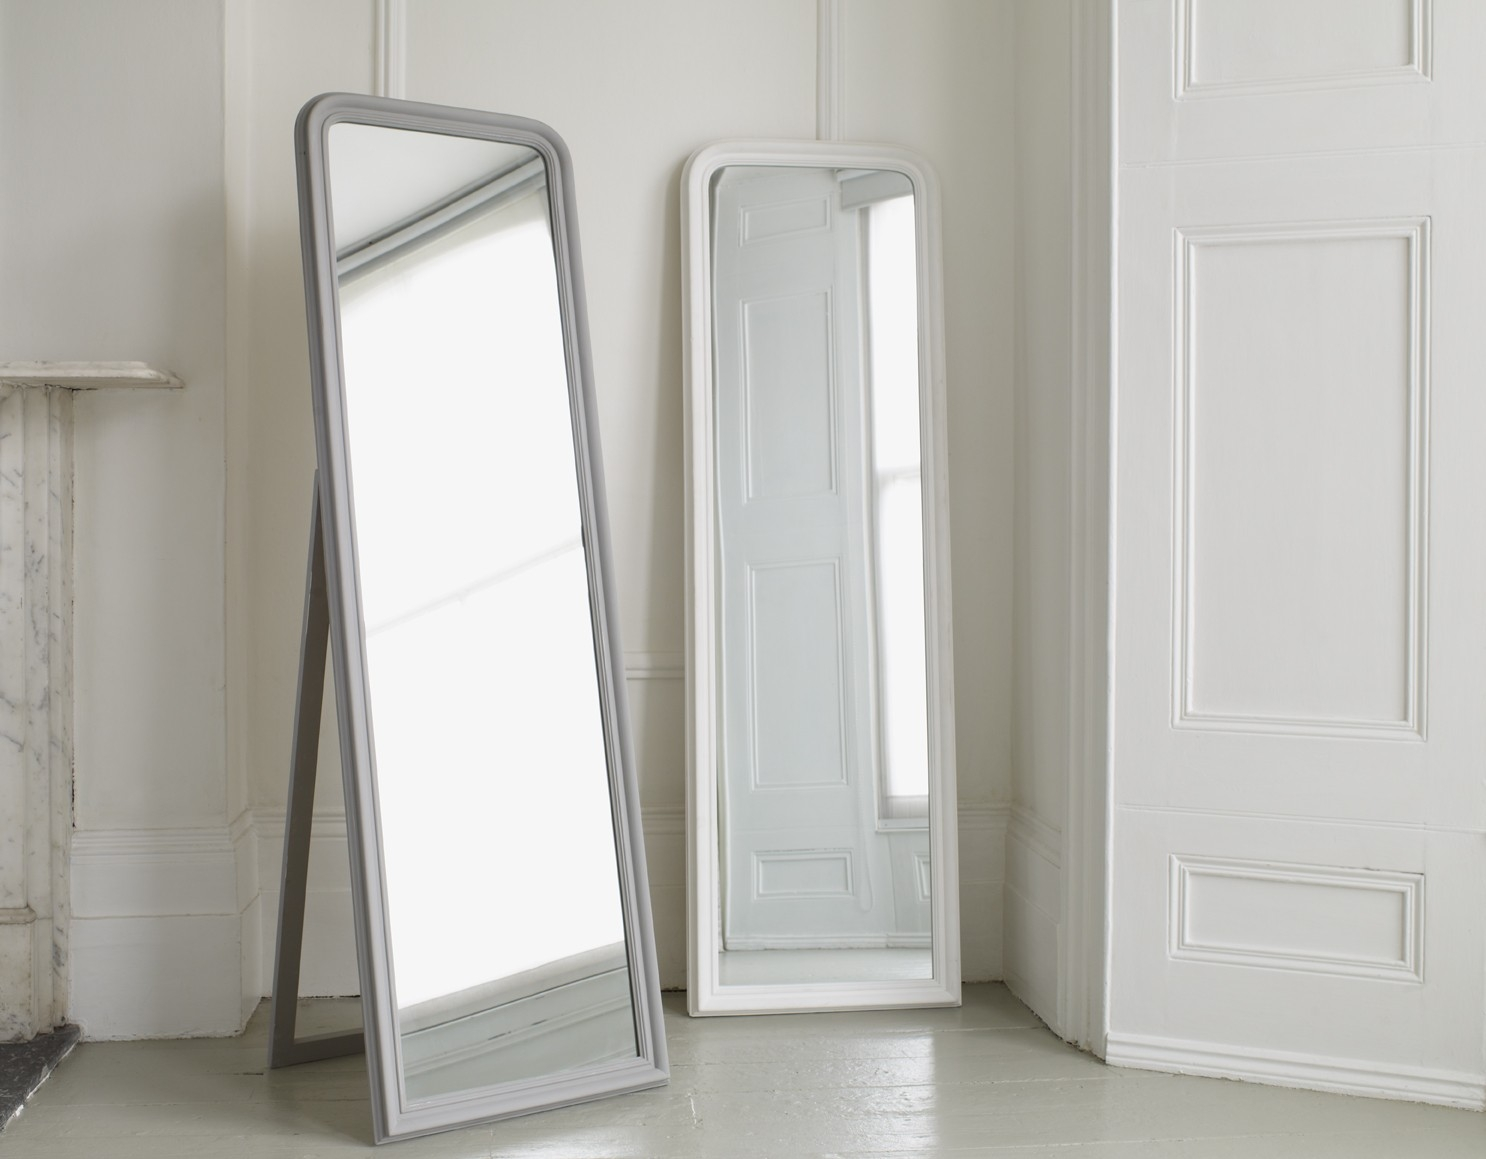 A Simple Yet Elegant Full Length Mirror Available In Classic Regarding Full Length Free Standing Mirror With Drawer (Image 2 of 15)